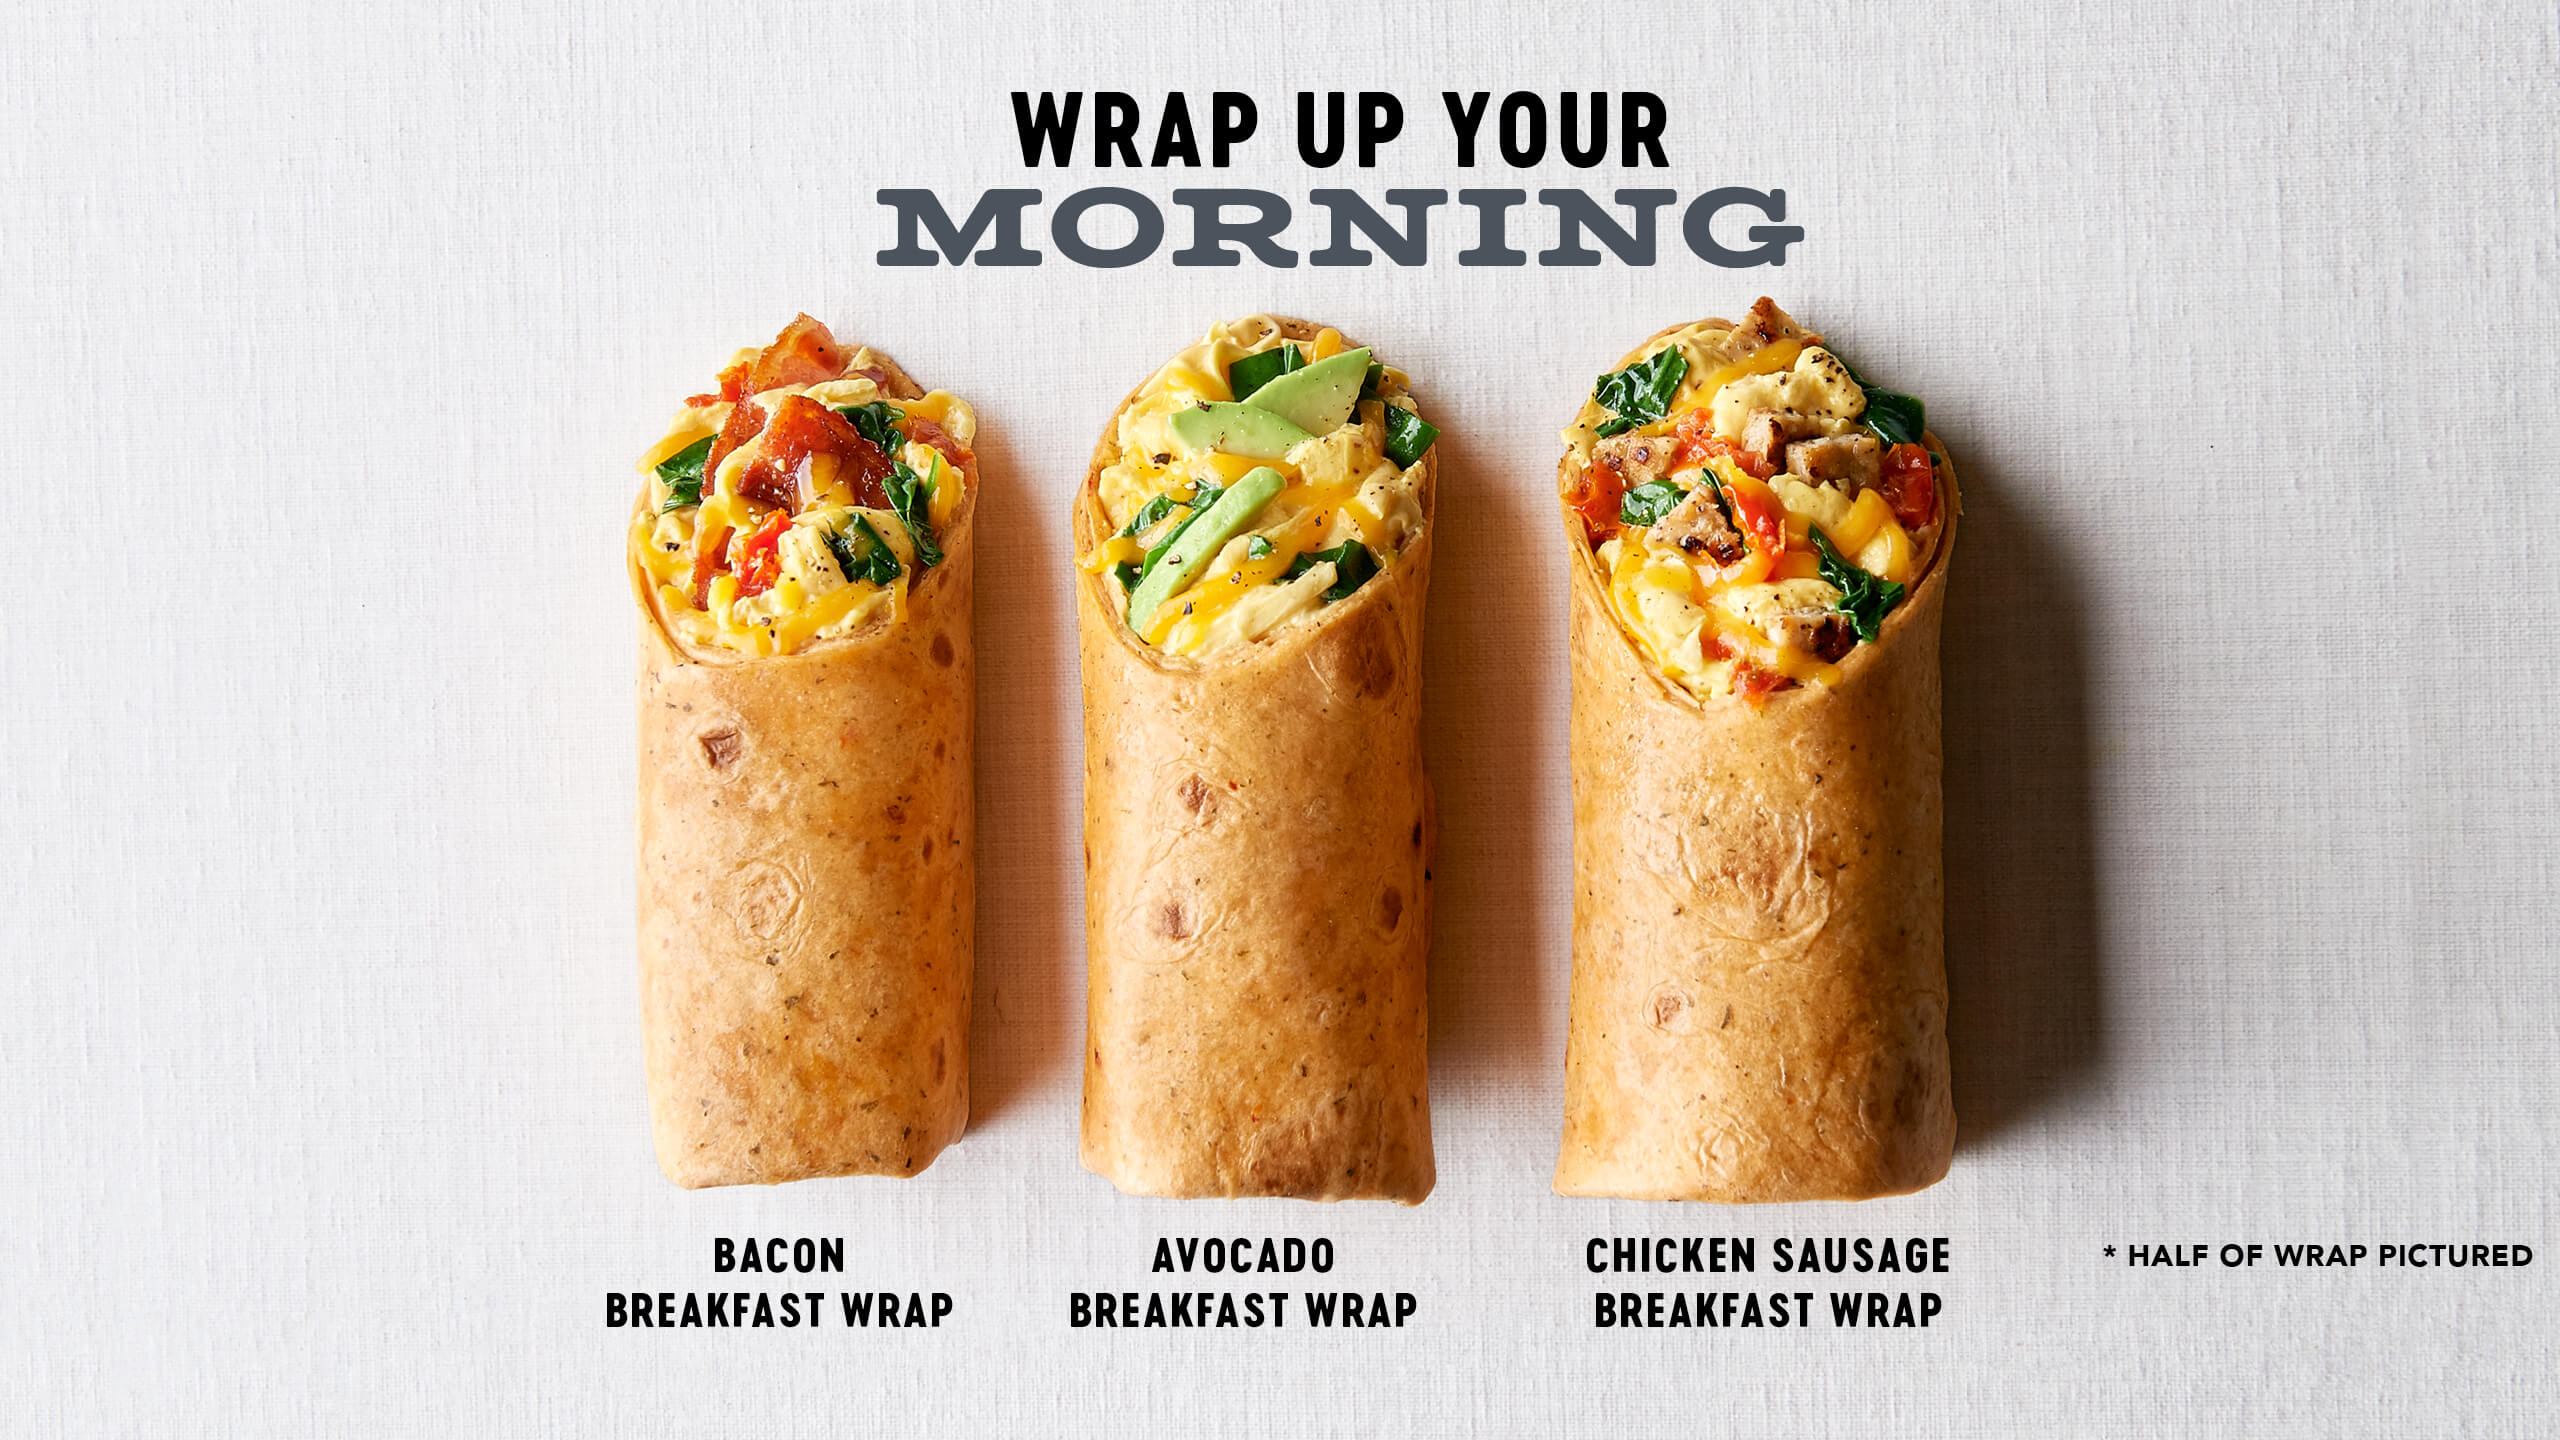 Wrap Up Your Morning